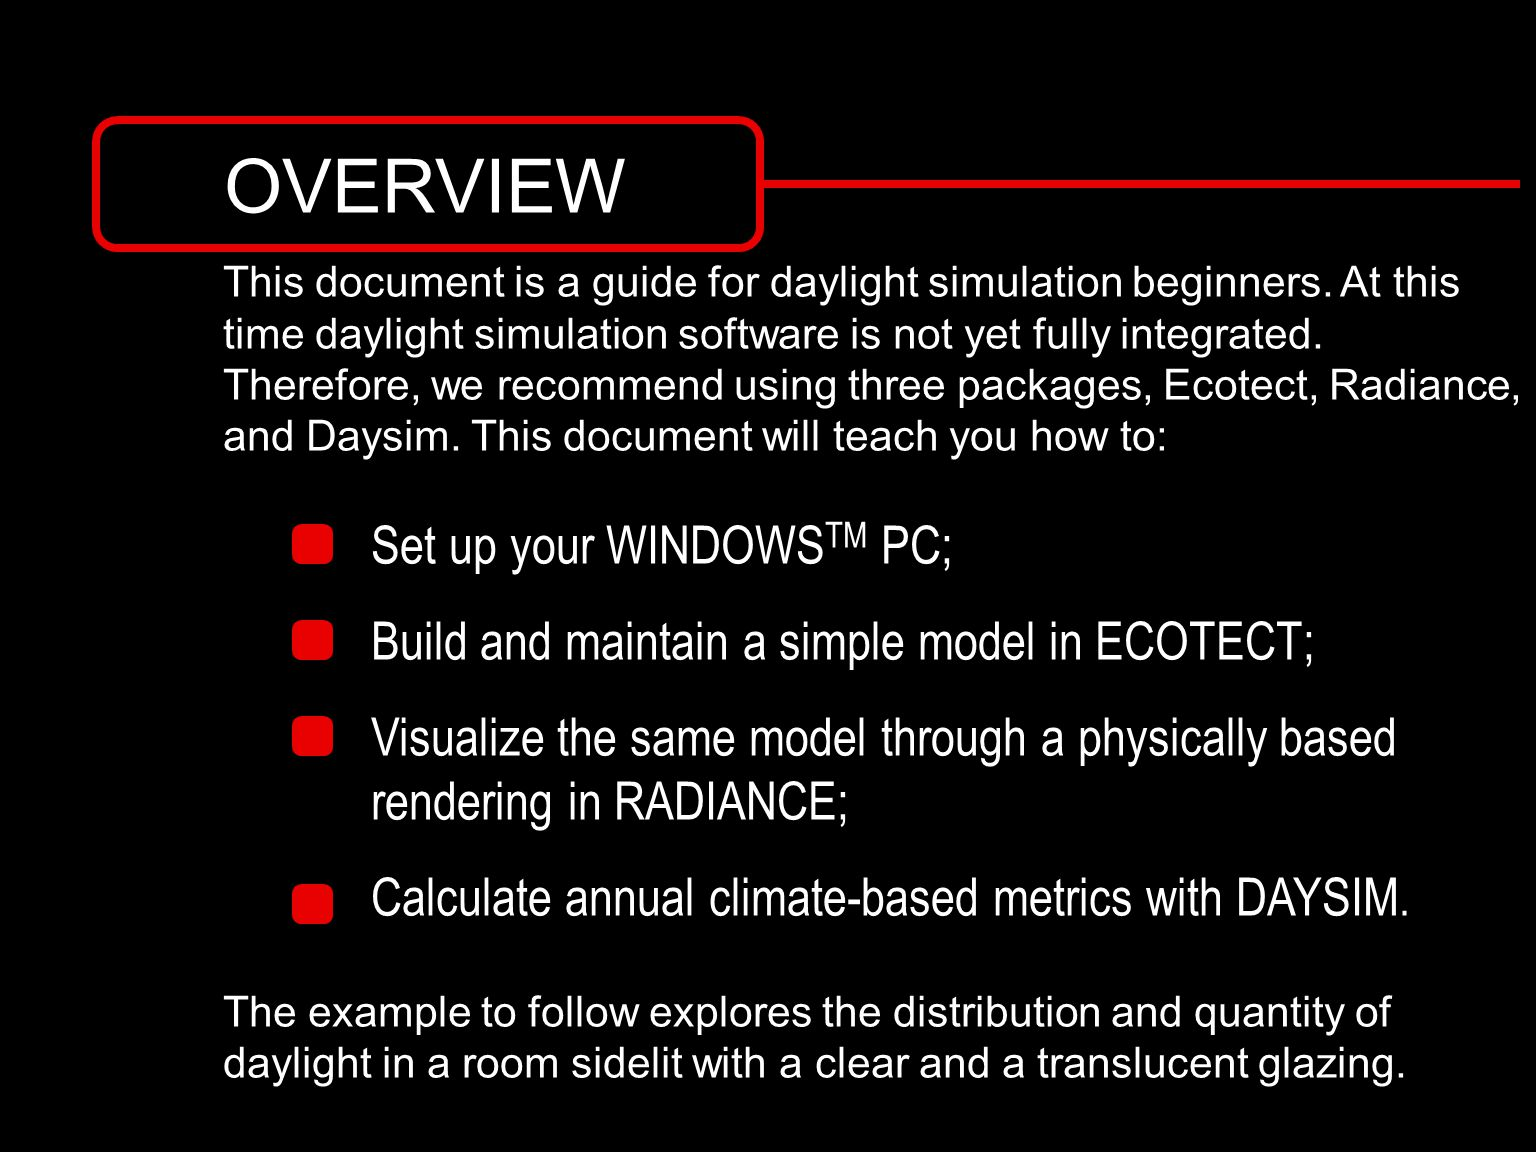 Since DAYSIM is based on the validated RADIANCE raytracer, Daylight Factor predictions using DAYSIM are more reliable than those obtained within ECOTECT.